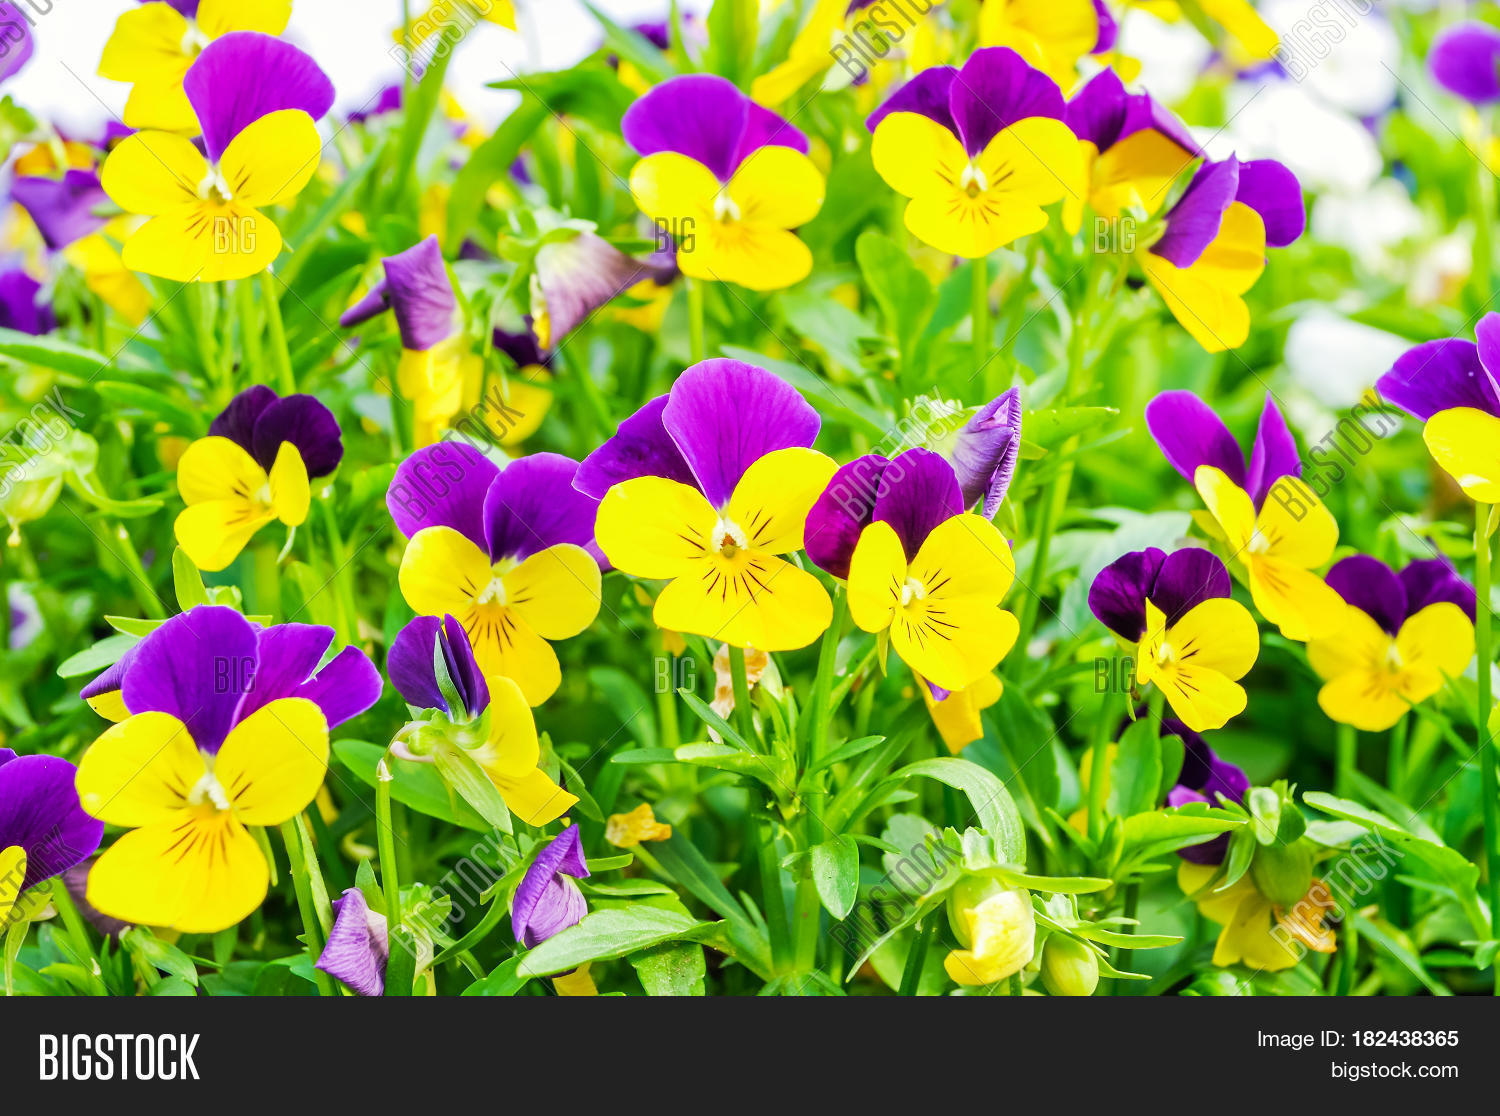 Summer Flower Nature Image Photo Free Trial Bigstock